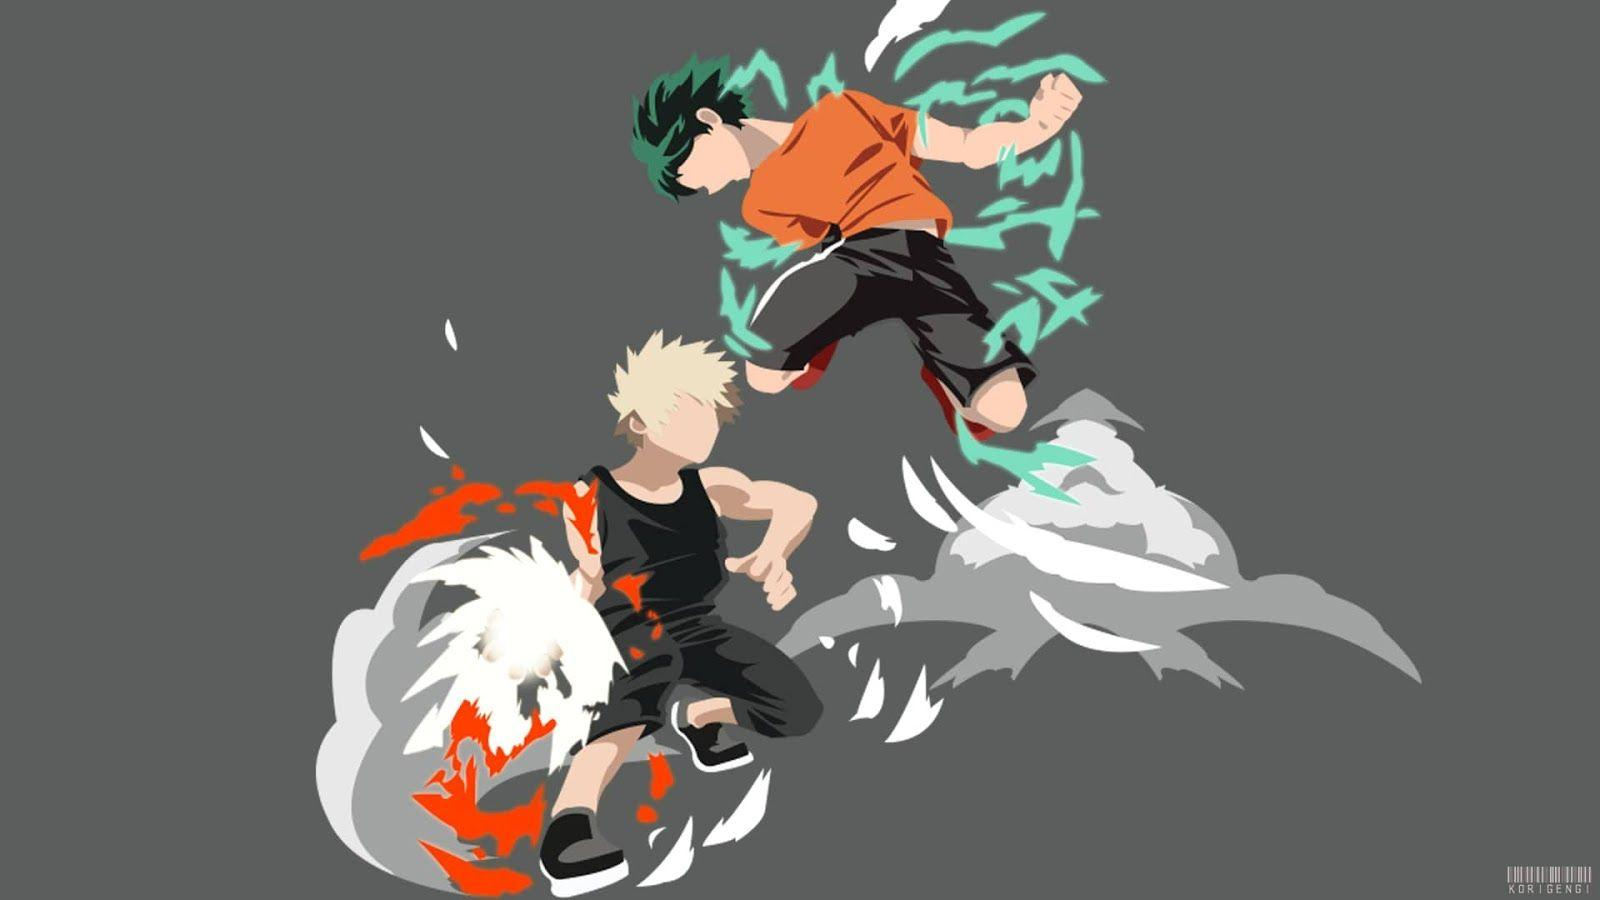 Tons of awesome anime aesthetic desktop hd wallpapers to download for free. Bakugo Wallpapers - Wallpaper Cave